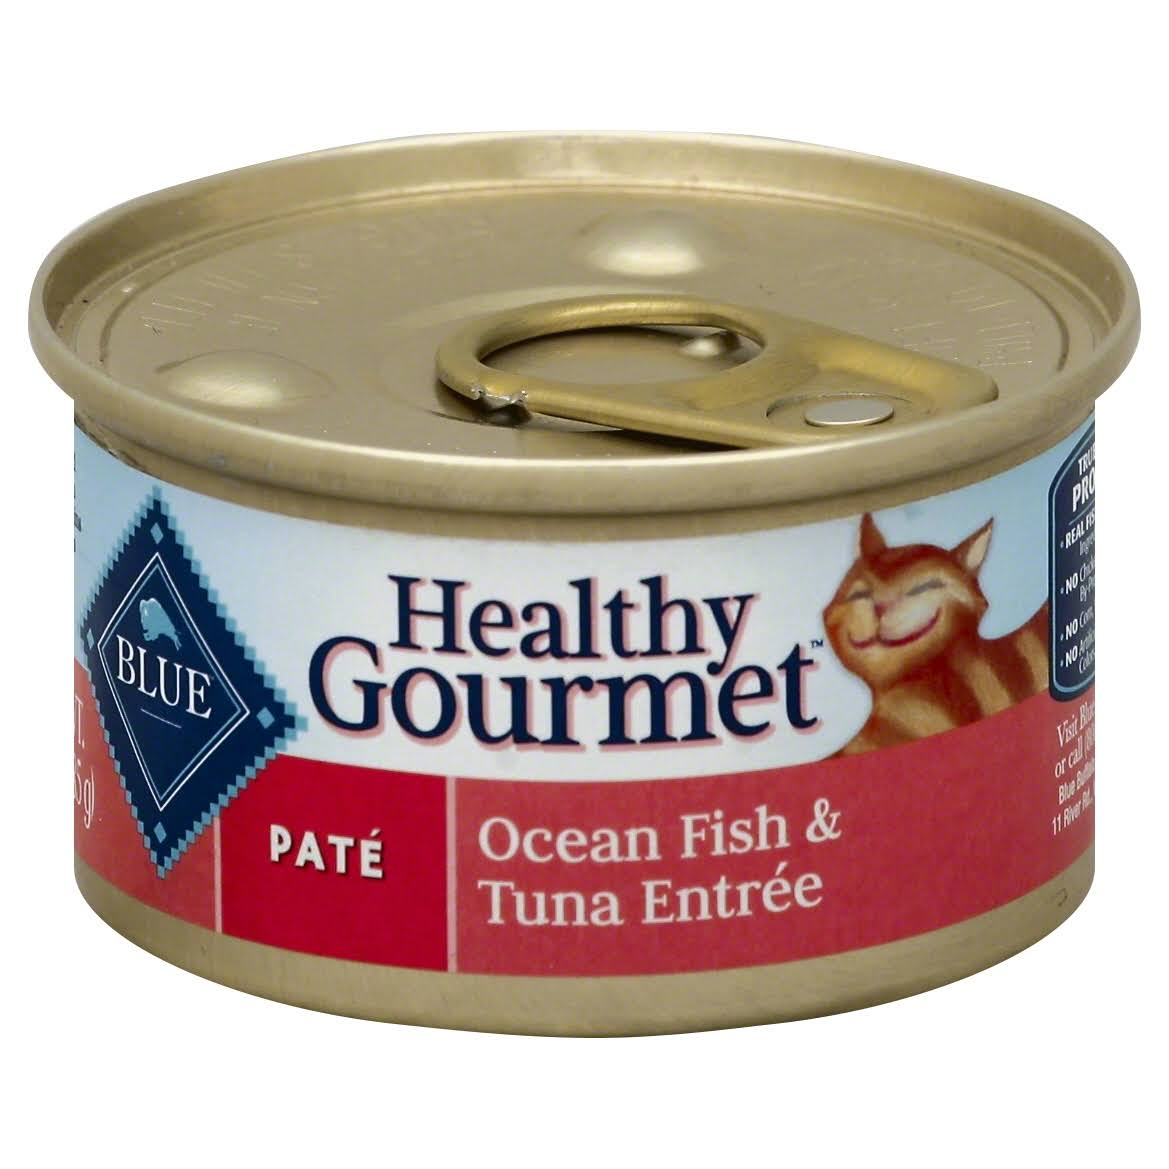 Blue Buffalo Healthy Gourmet Pate Cat Food - Ocean Fish & Tuna Entree